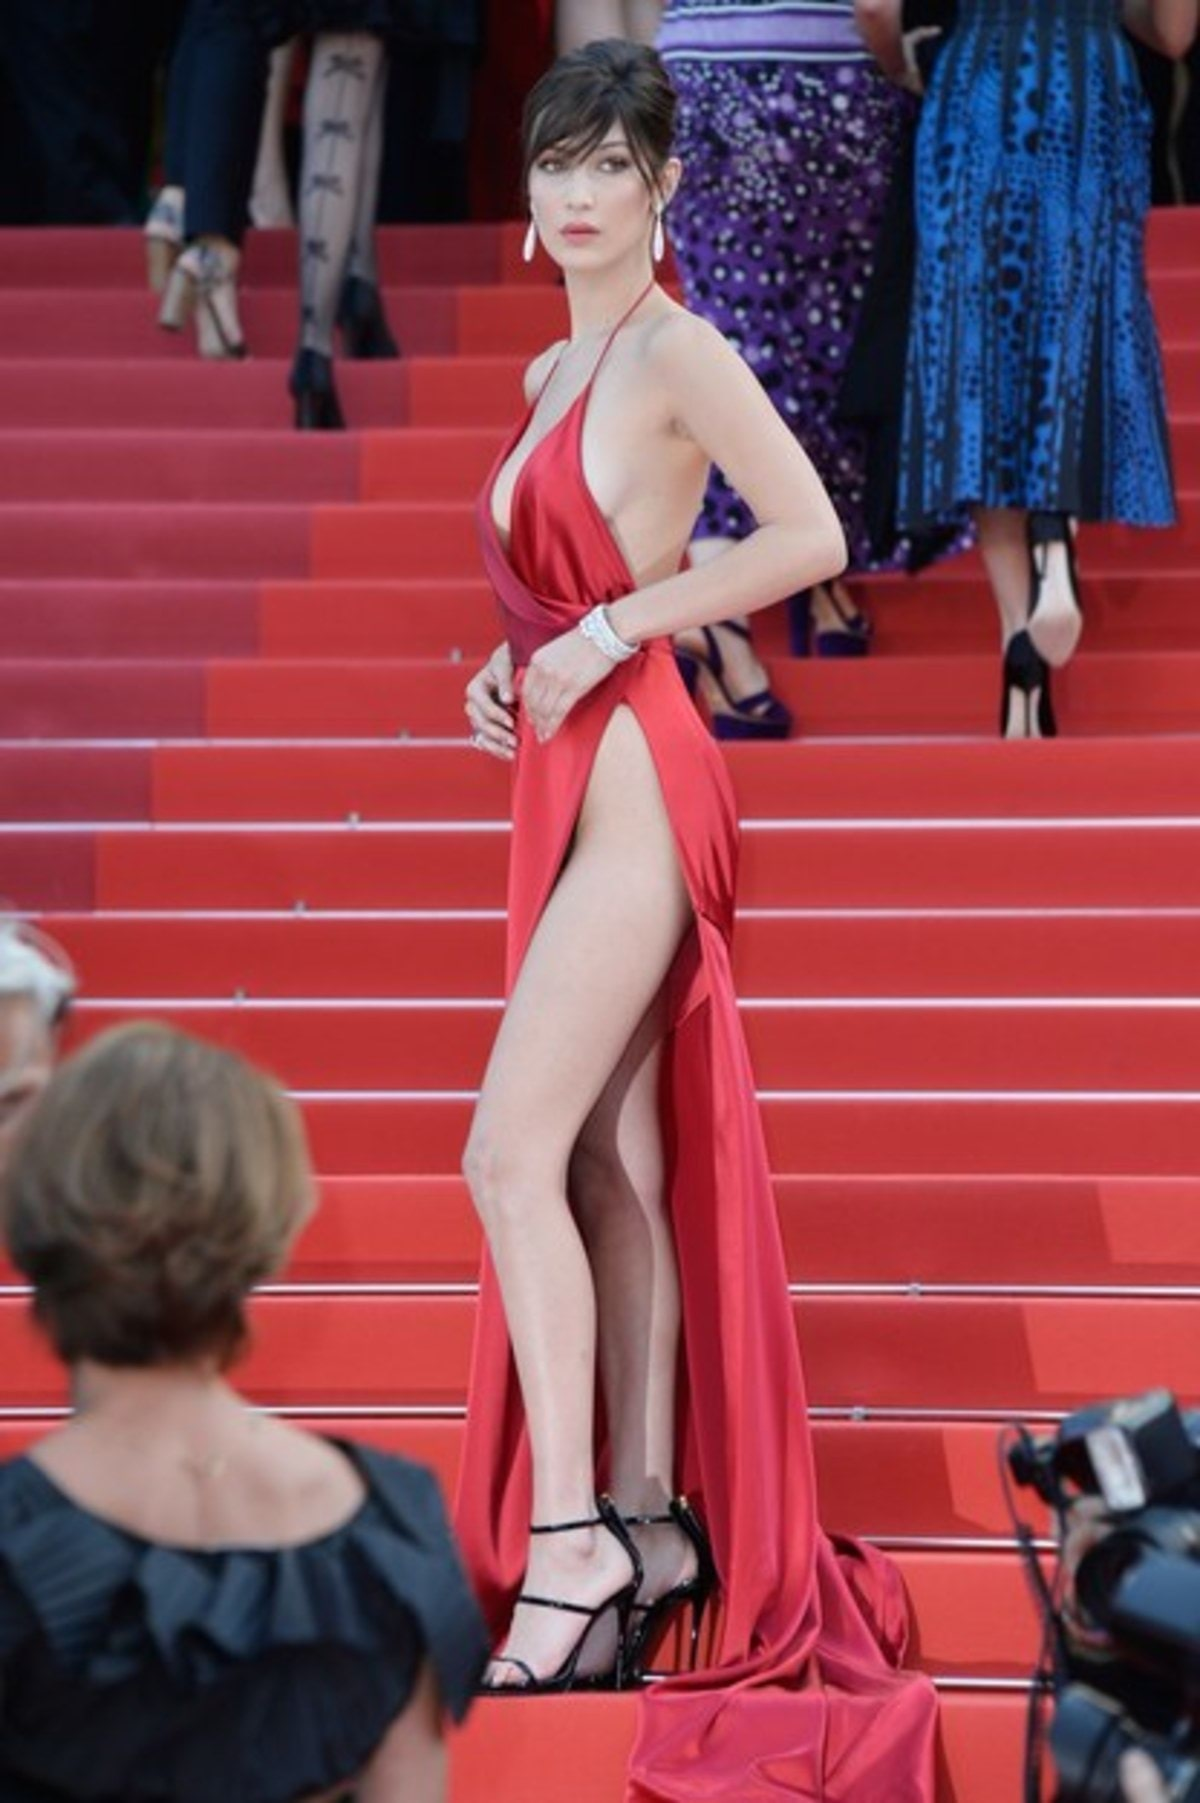 bella-hadid-cannes-wardrobe-malfunction-red-dress-1